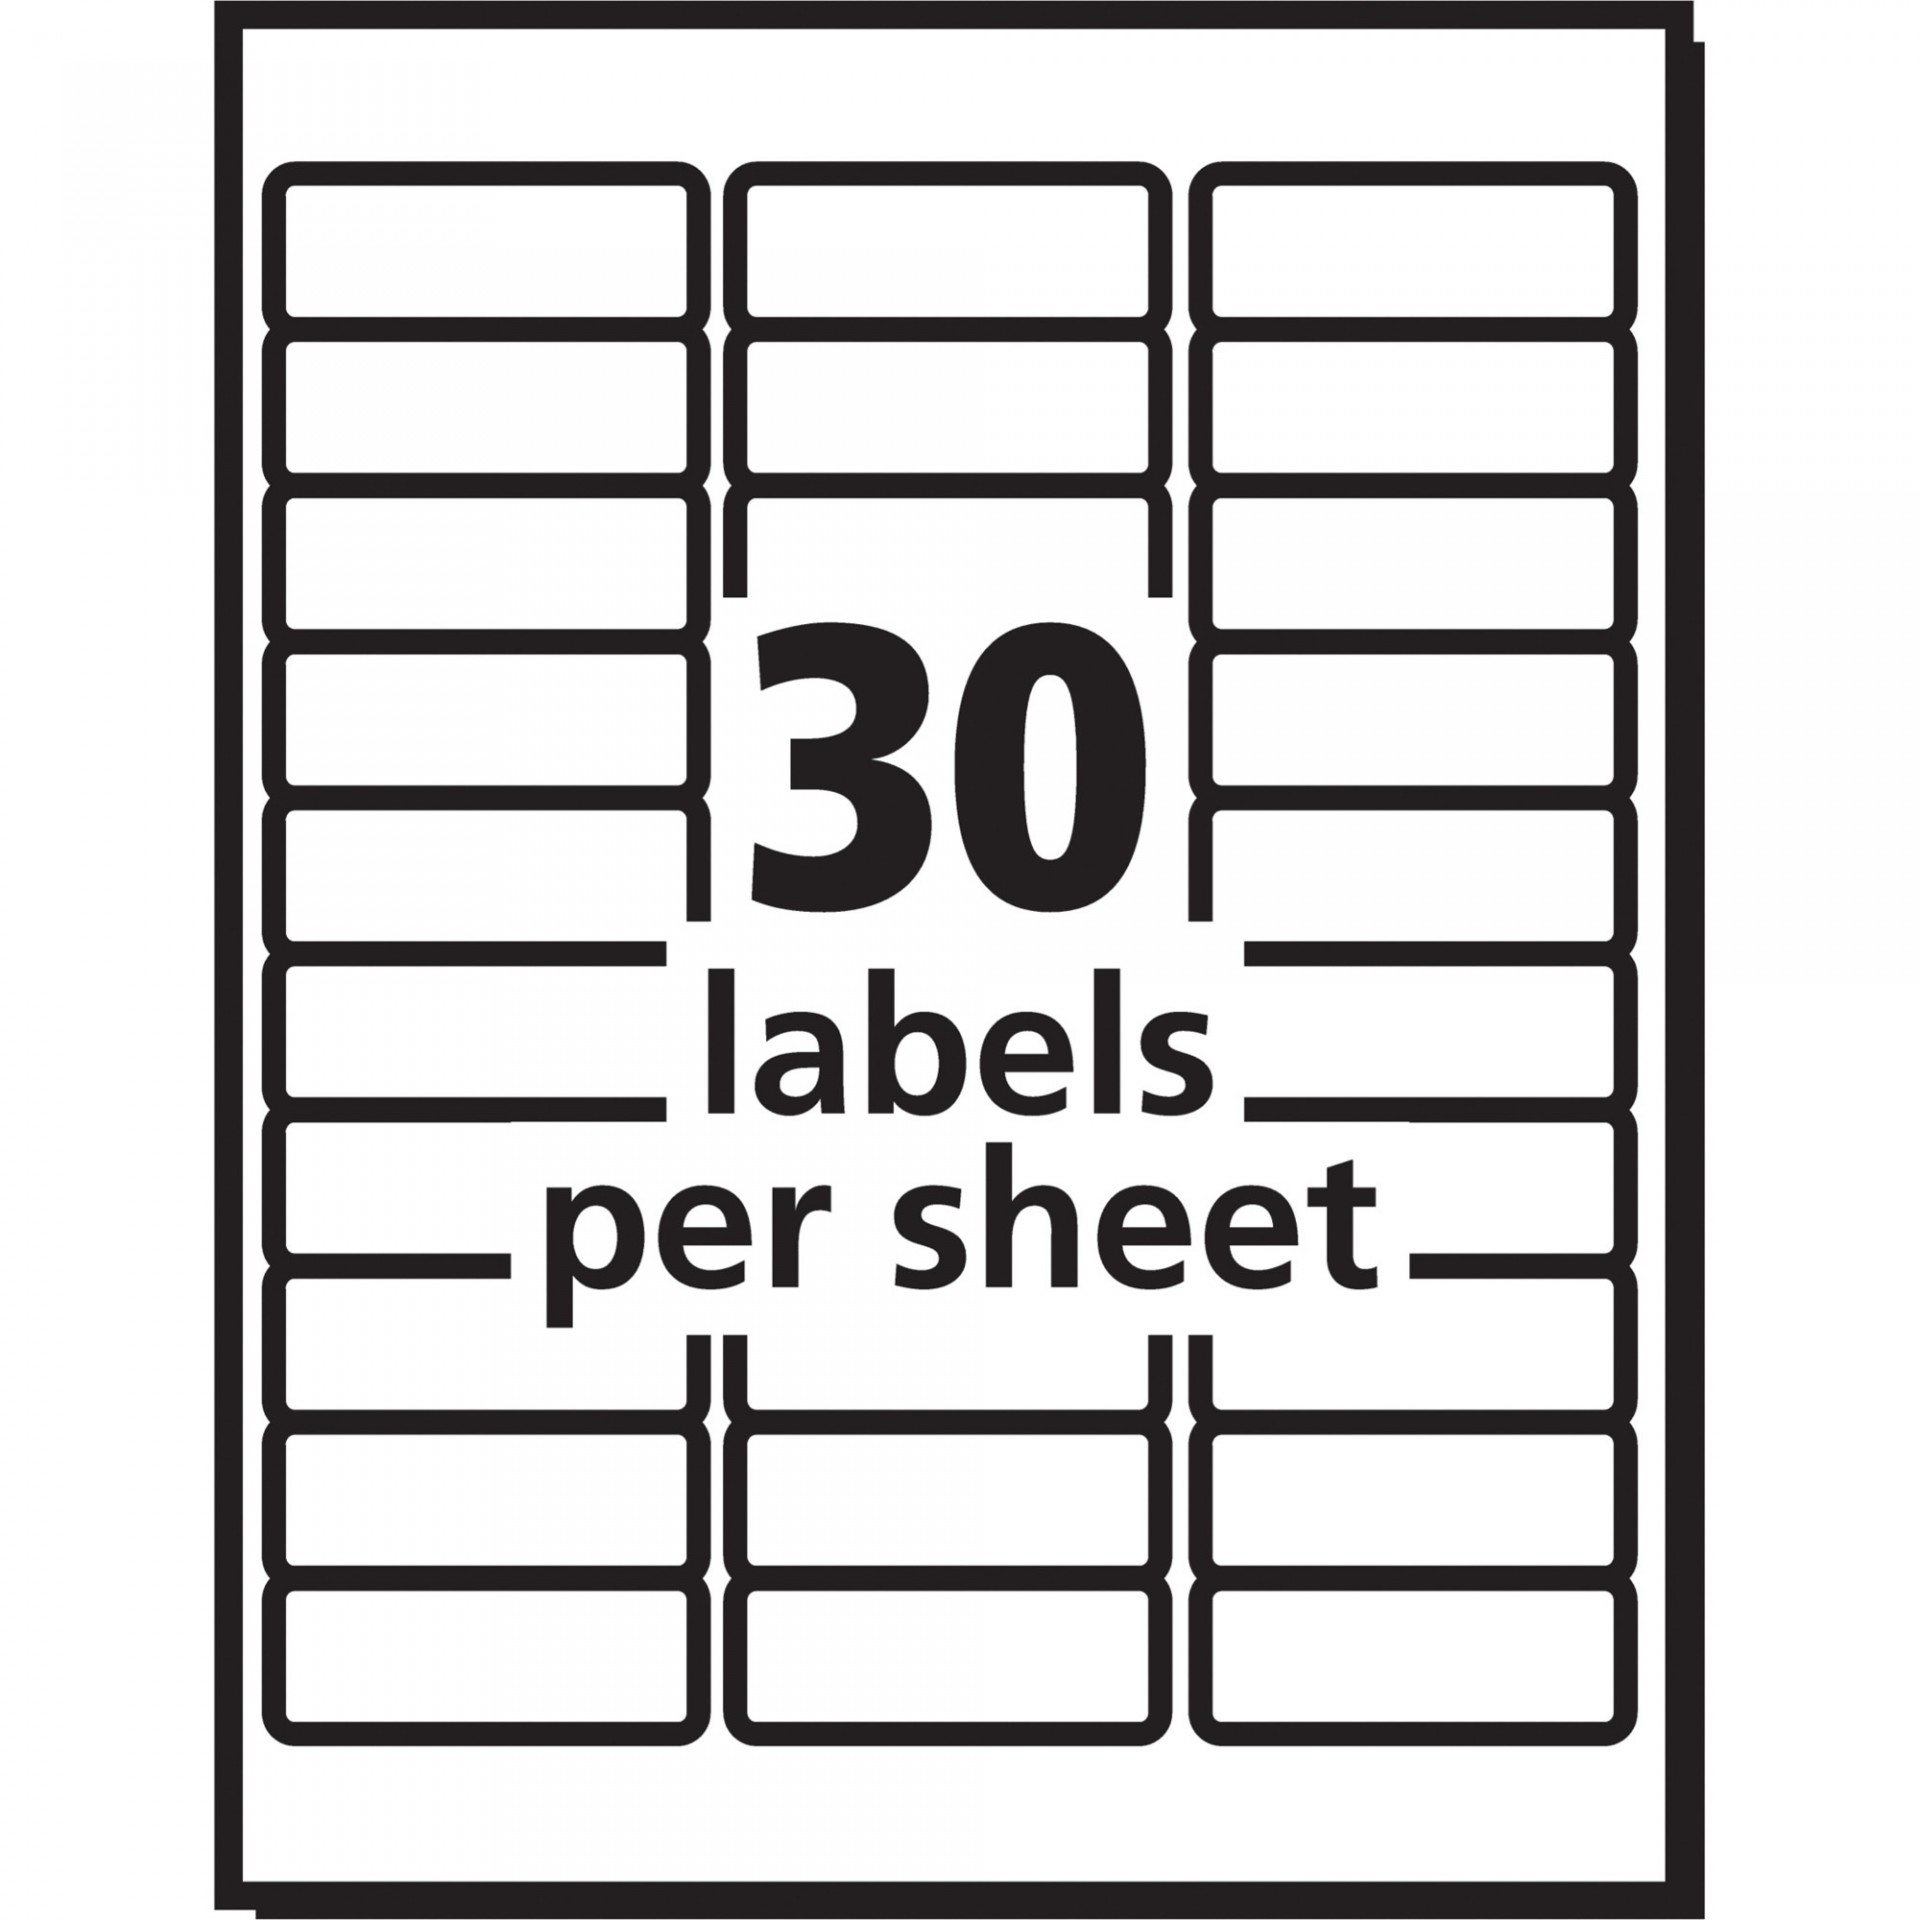 005 Awful Addres Label Template Free High Definition  Cute Shipping Return Word1920